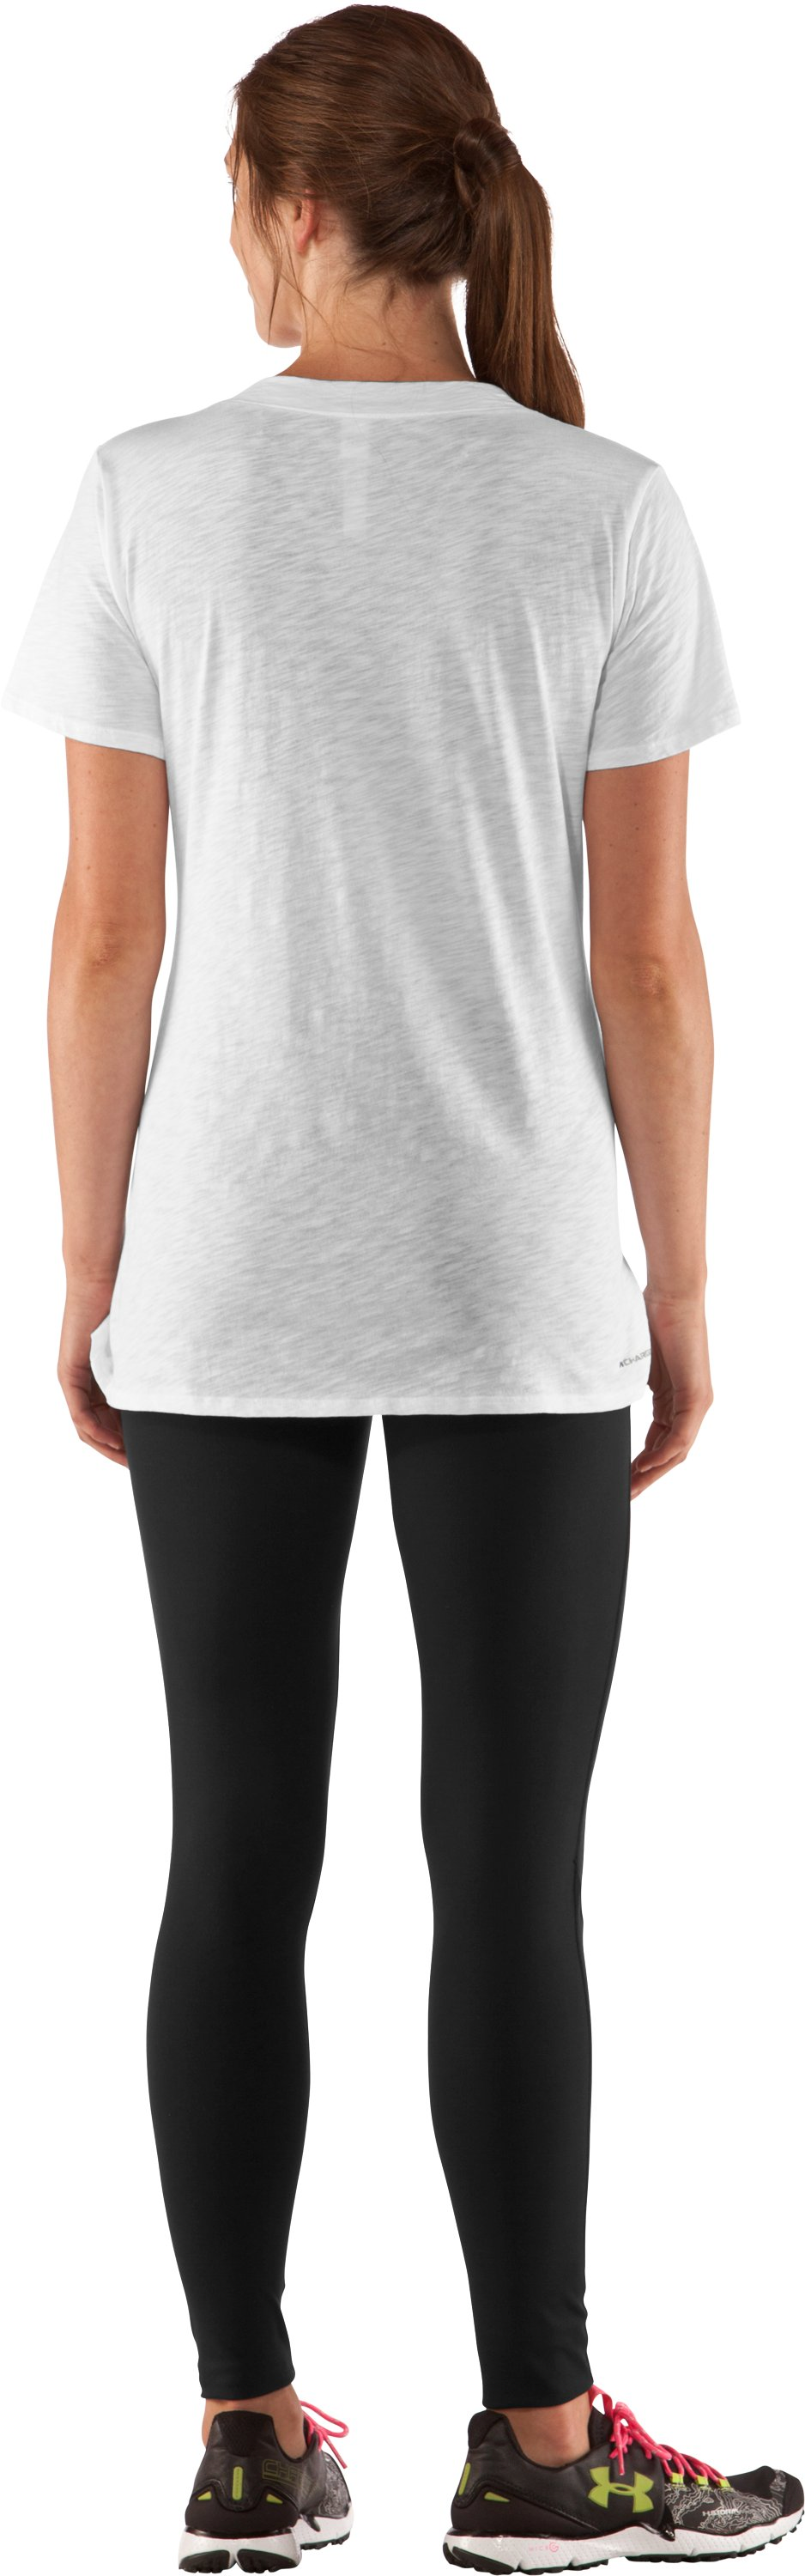 Women's Charged Cotton® Slub T-Shirt, White, Back